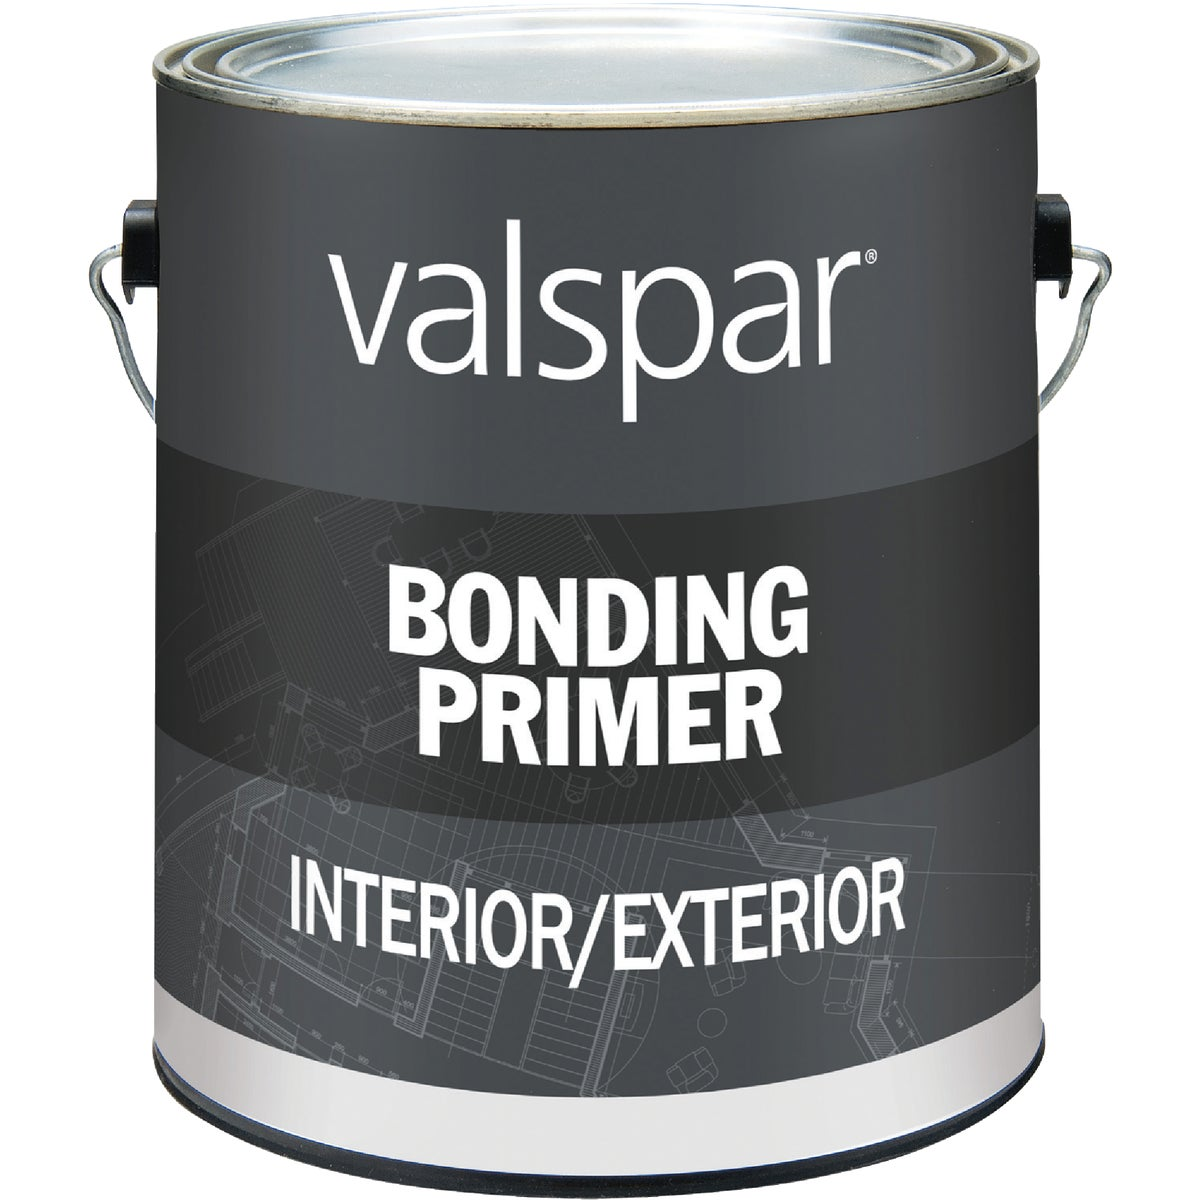 INT/EXT STN BLOCK PRIMER - 045.0011289.007 by Valspar Corp